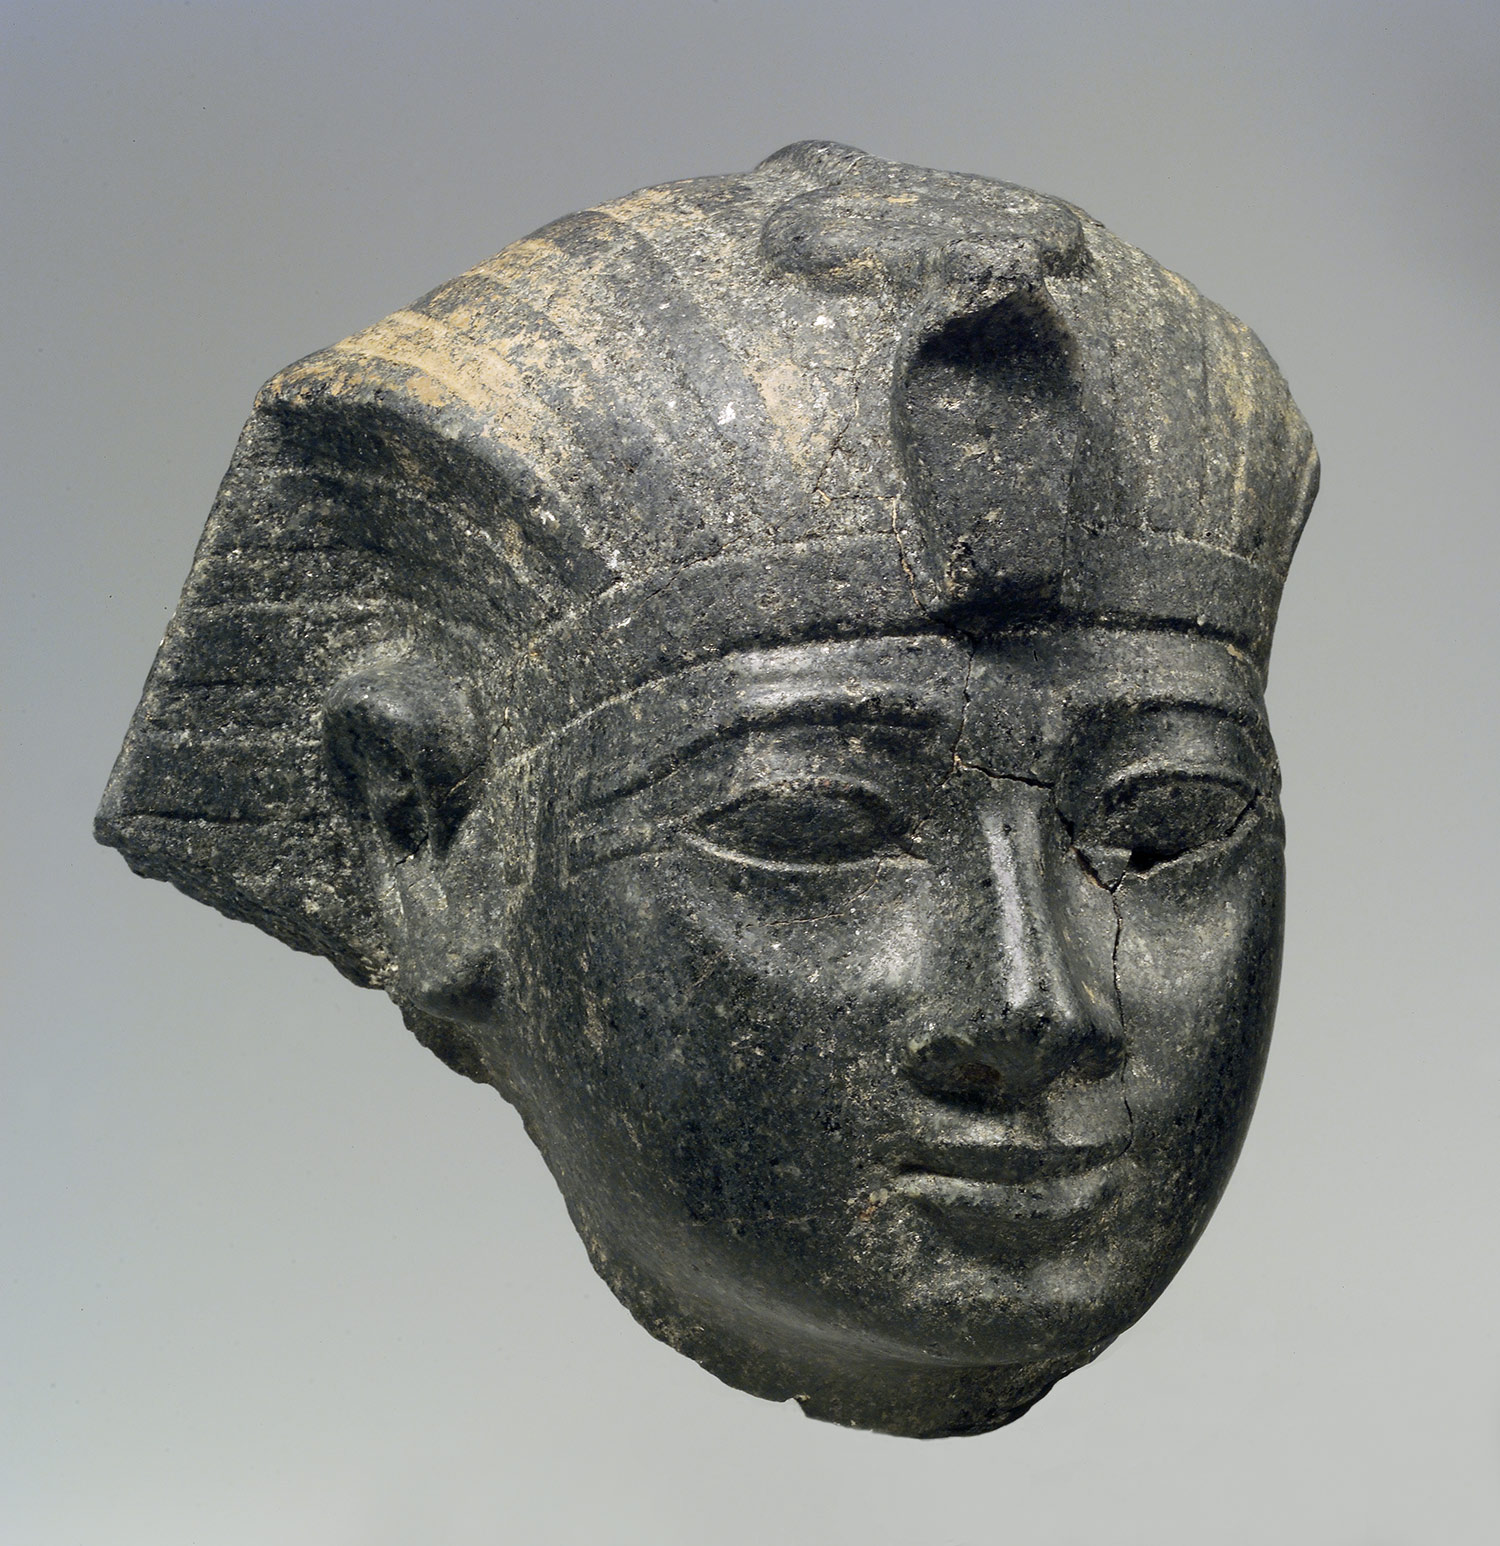 Head of Amenhotep II [Egyptian] (66.99.20) | Heilbrunn Timeline of ...